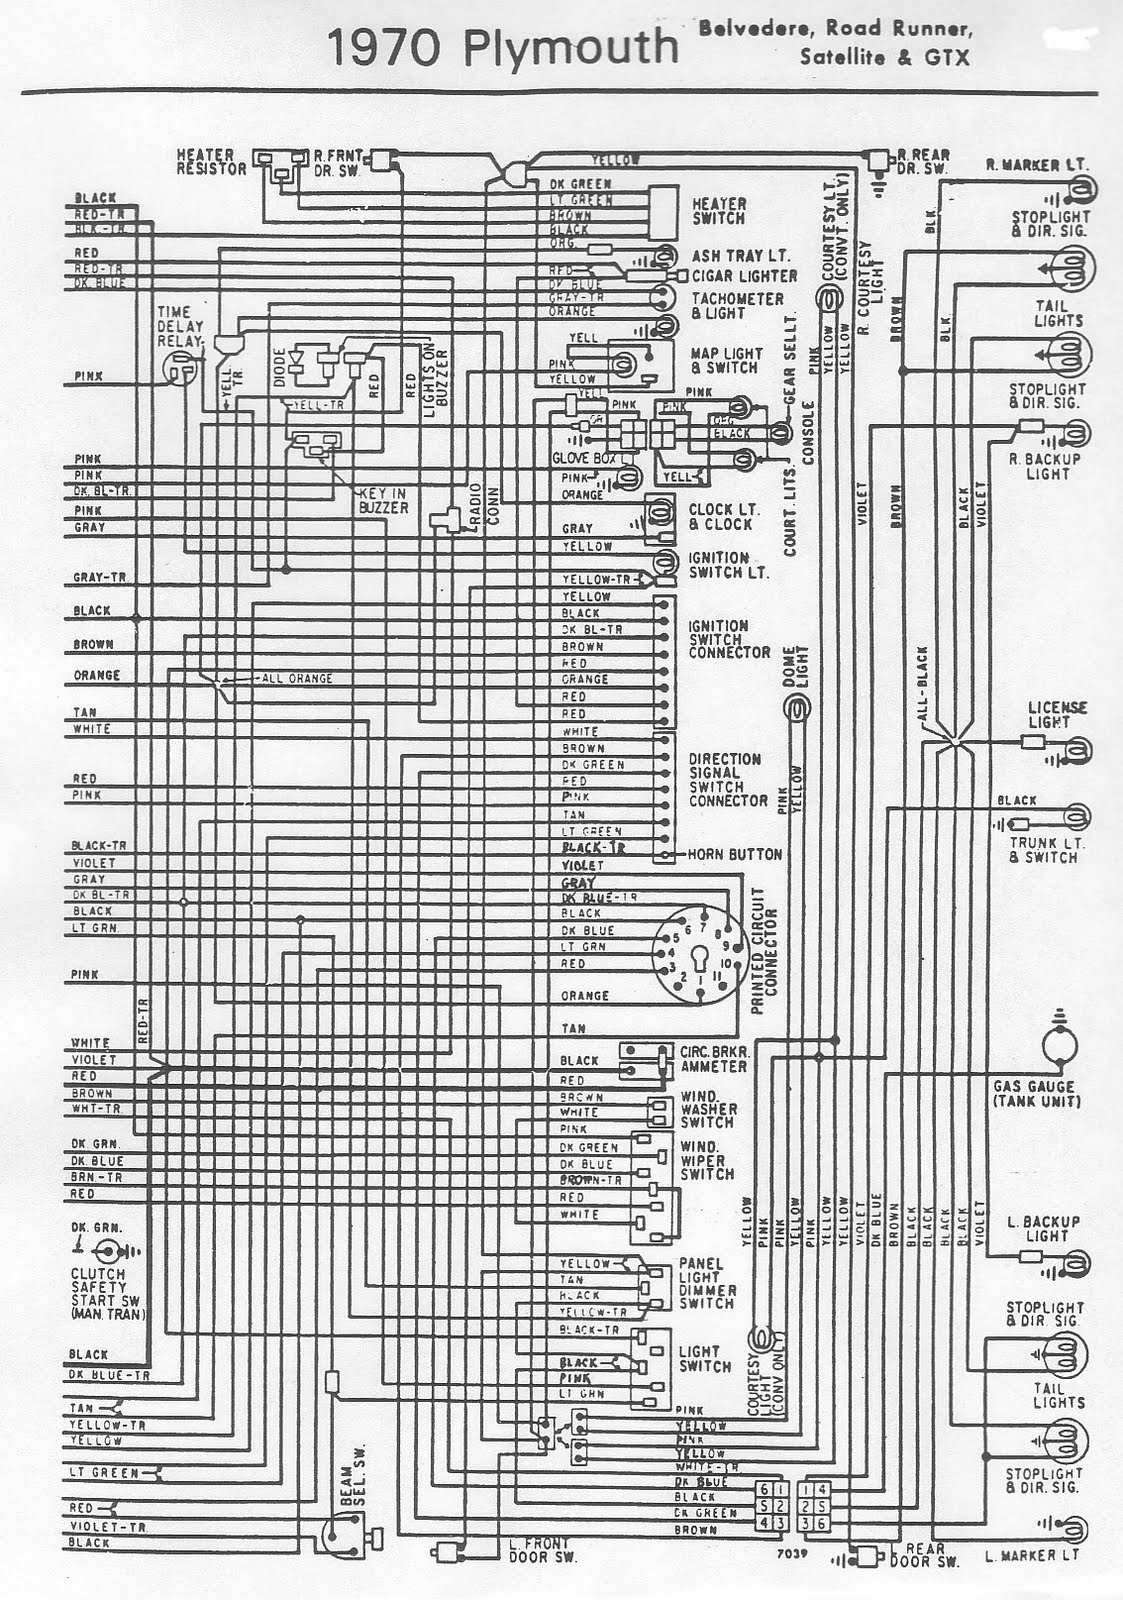 1970 Chevy C10 Hei Wiring Diagram Largest Database P10 1972 Plymouth Ignition Switch House Rh Maxturner Co 89 Truck 72 Starter